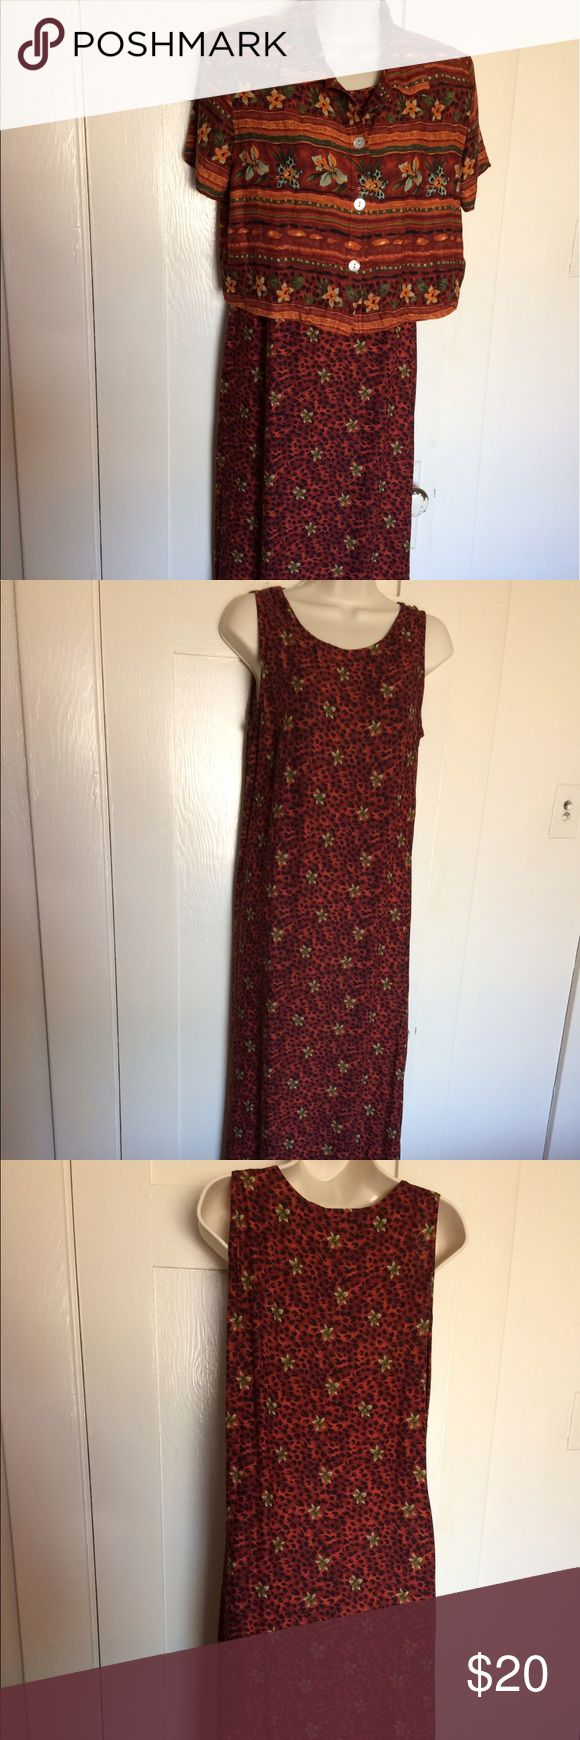 """🆕 Pretty Worthington orange and brown maxi dress Worthington maxi dress. There is s sleeveless dress and a little jacket. Shoulder pads. Jacket has three buttons.   Lying flat measurements:   Bust: 18"""" Waist: 17"""" Length: 51""""  100% Rayon  No stains or tears   Offers welcome   Thanks for coming by. Please look at the rest of my closet. Worthington Dresses Maxi"""